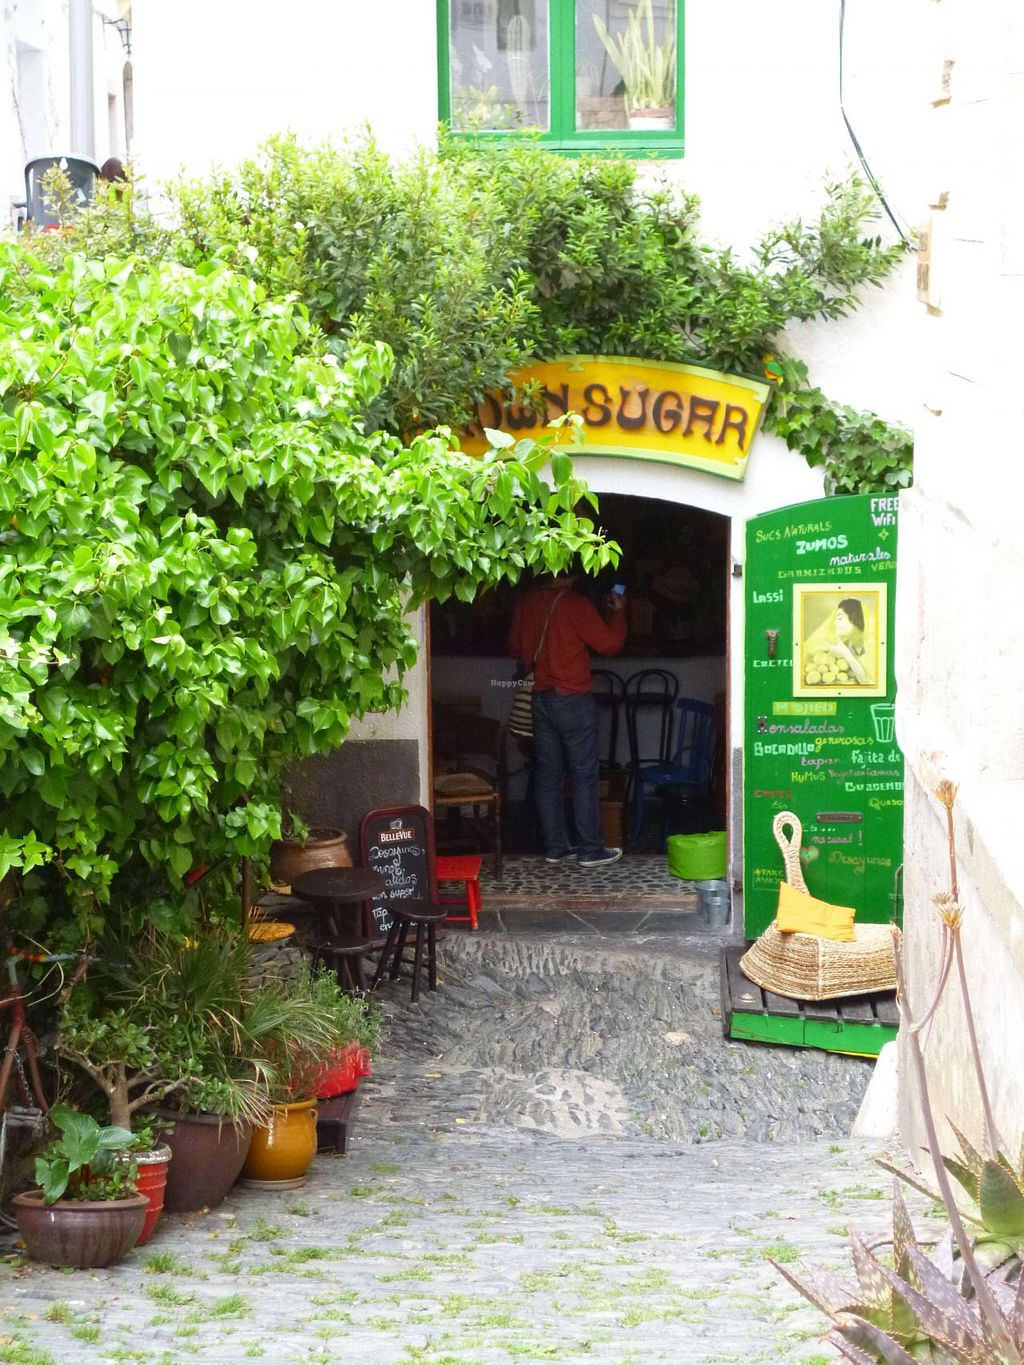 """Photo of Brown Sugar  by <a href=""""/members/profile/Arwenia"""">Arwenia</a> <br/>The lovely entrance of Brown Sugar Cafeteria in Cadaques <br/> April 30, 2015  - <a href='/contact/abuse/image/57856/100788'>Report</a>"""